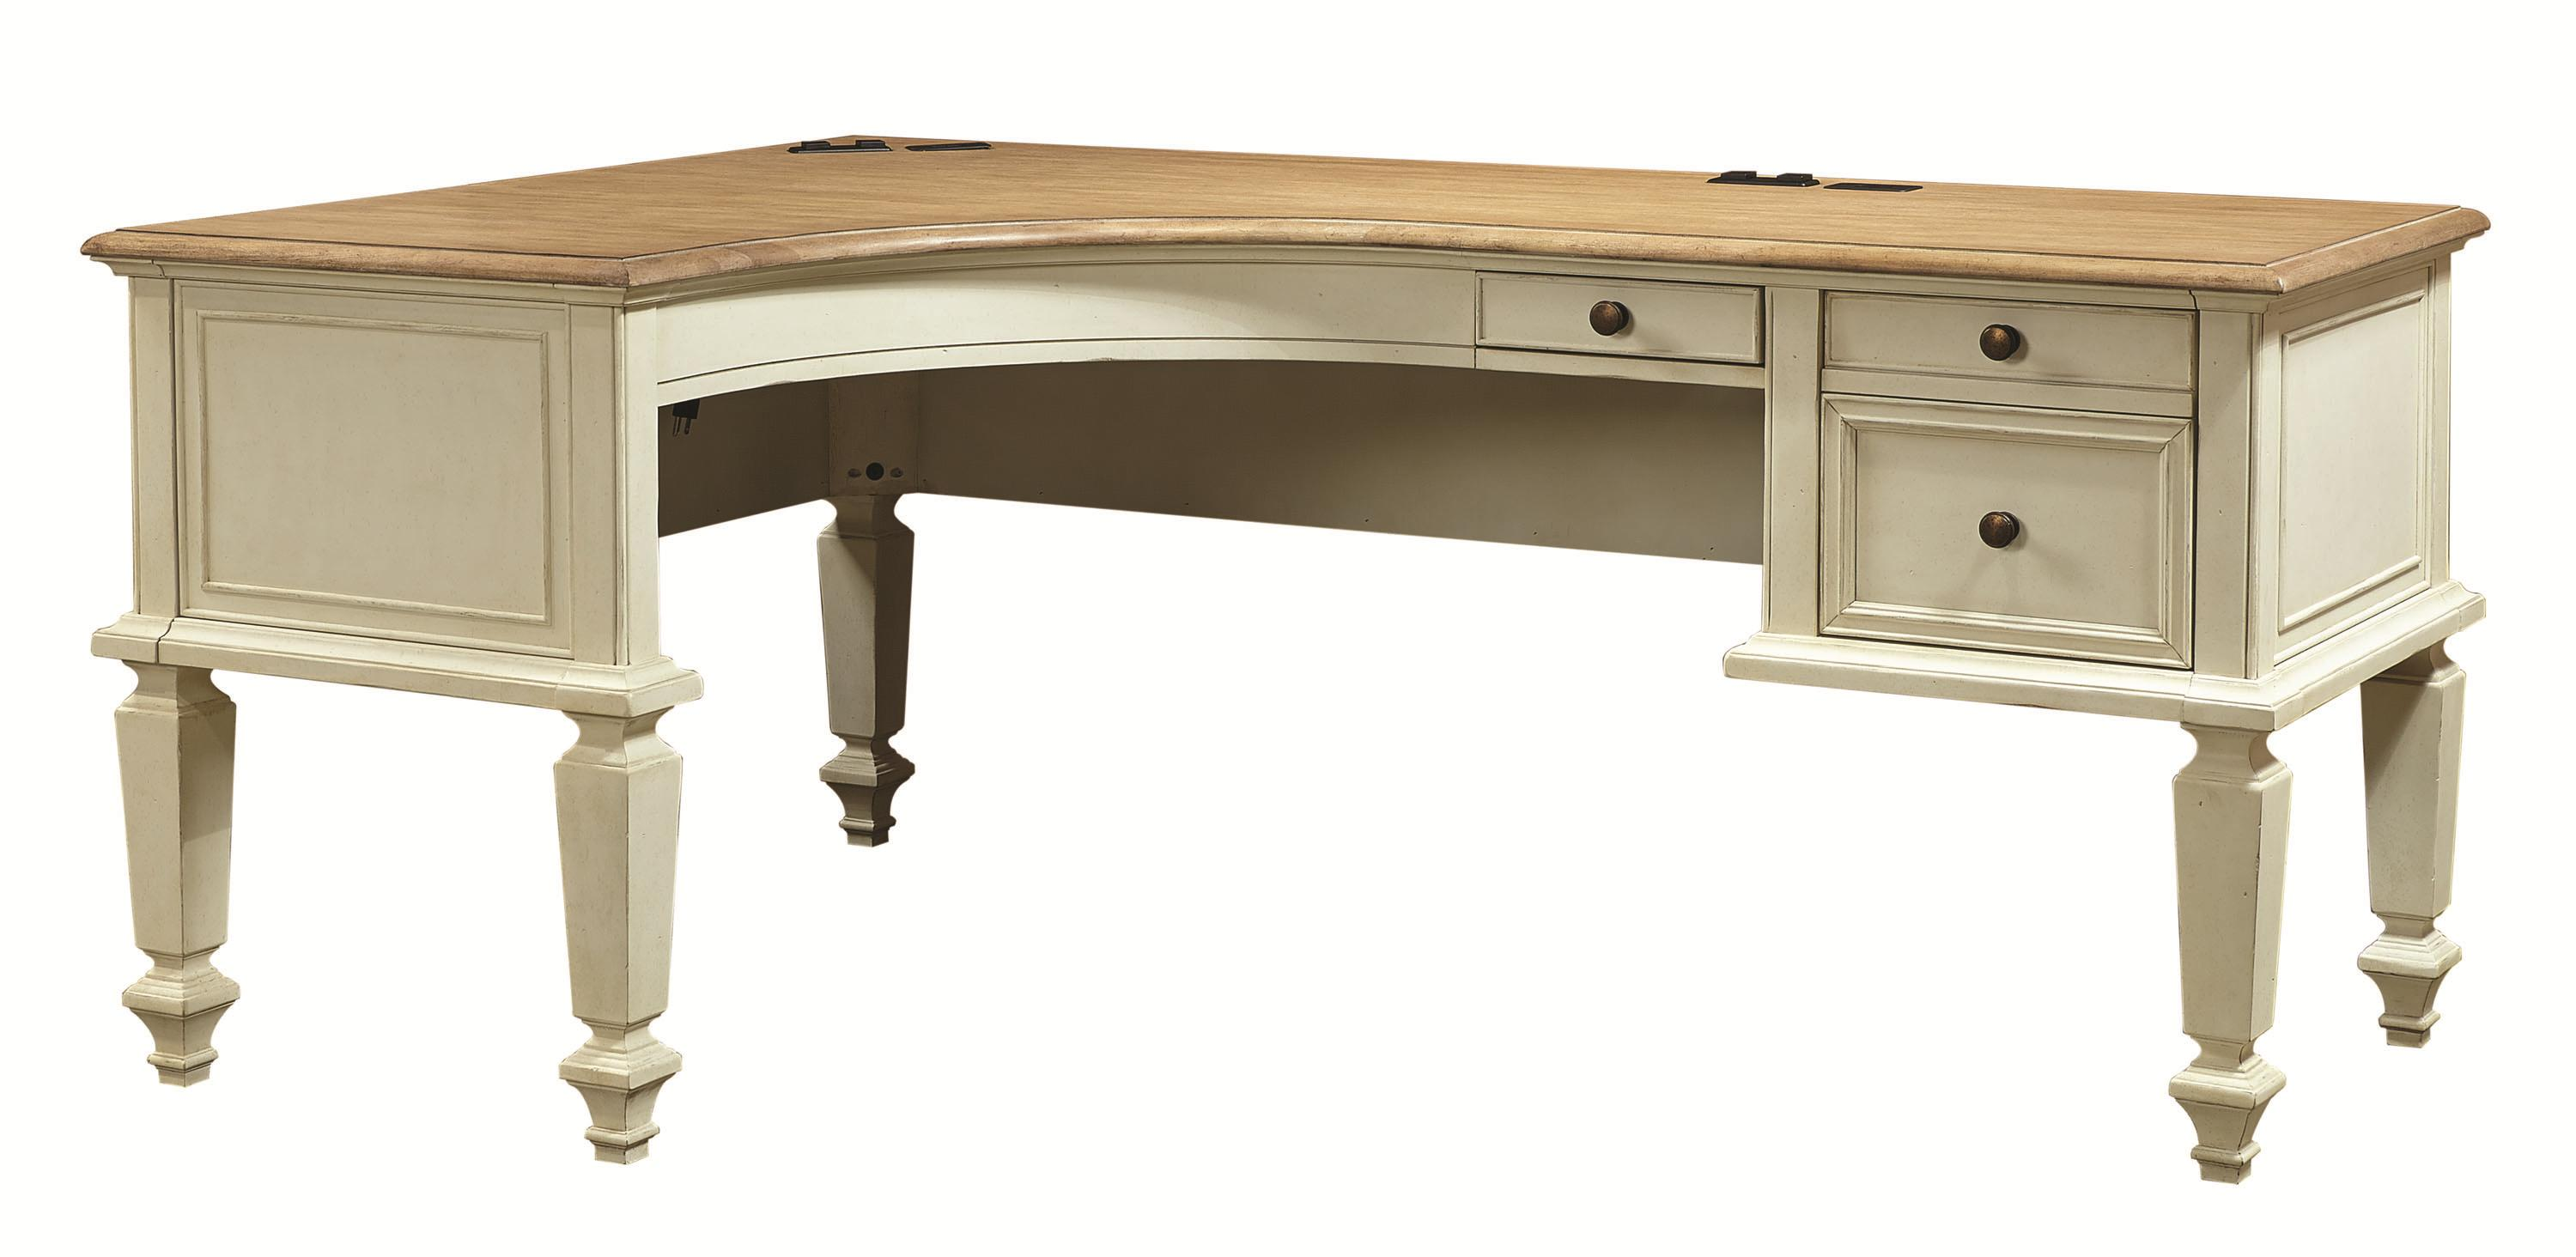 Aspenhome Cottonwood Curved Half Pedestal L Shaped Desk